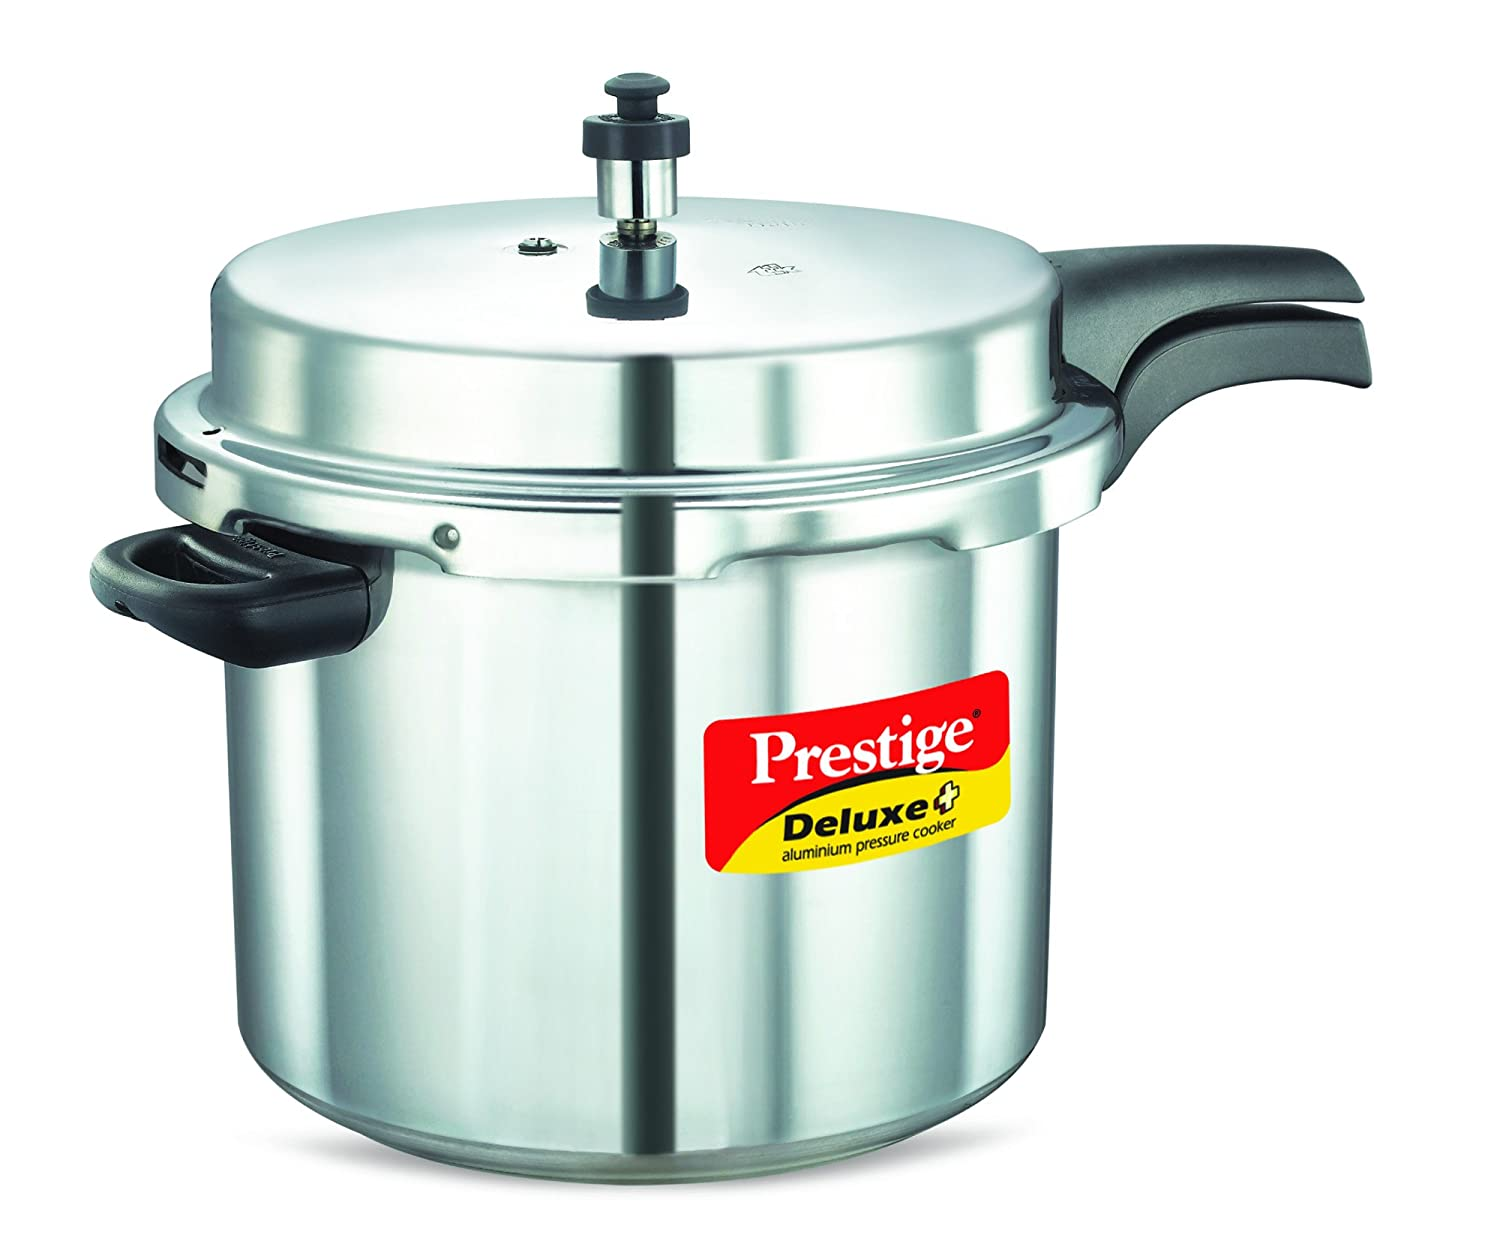 Amazon.com: Prestige PRDAPC12 Deluxe Plus 12-Liter New Flat Base ...